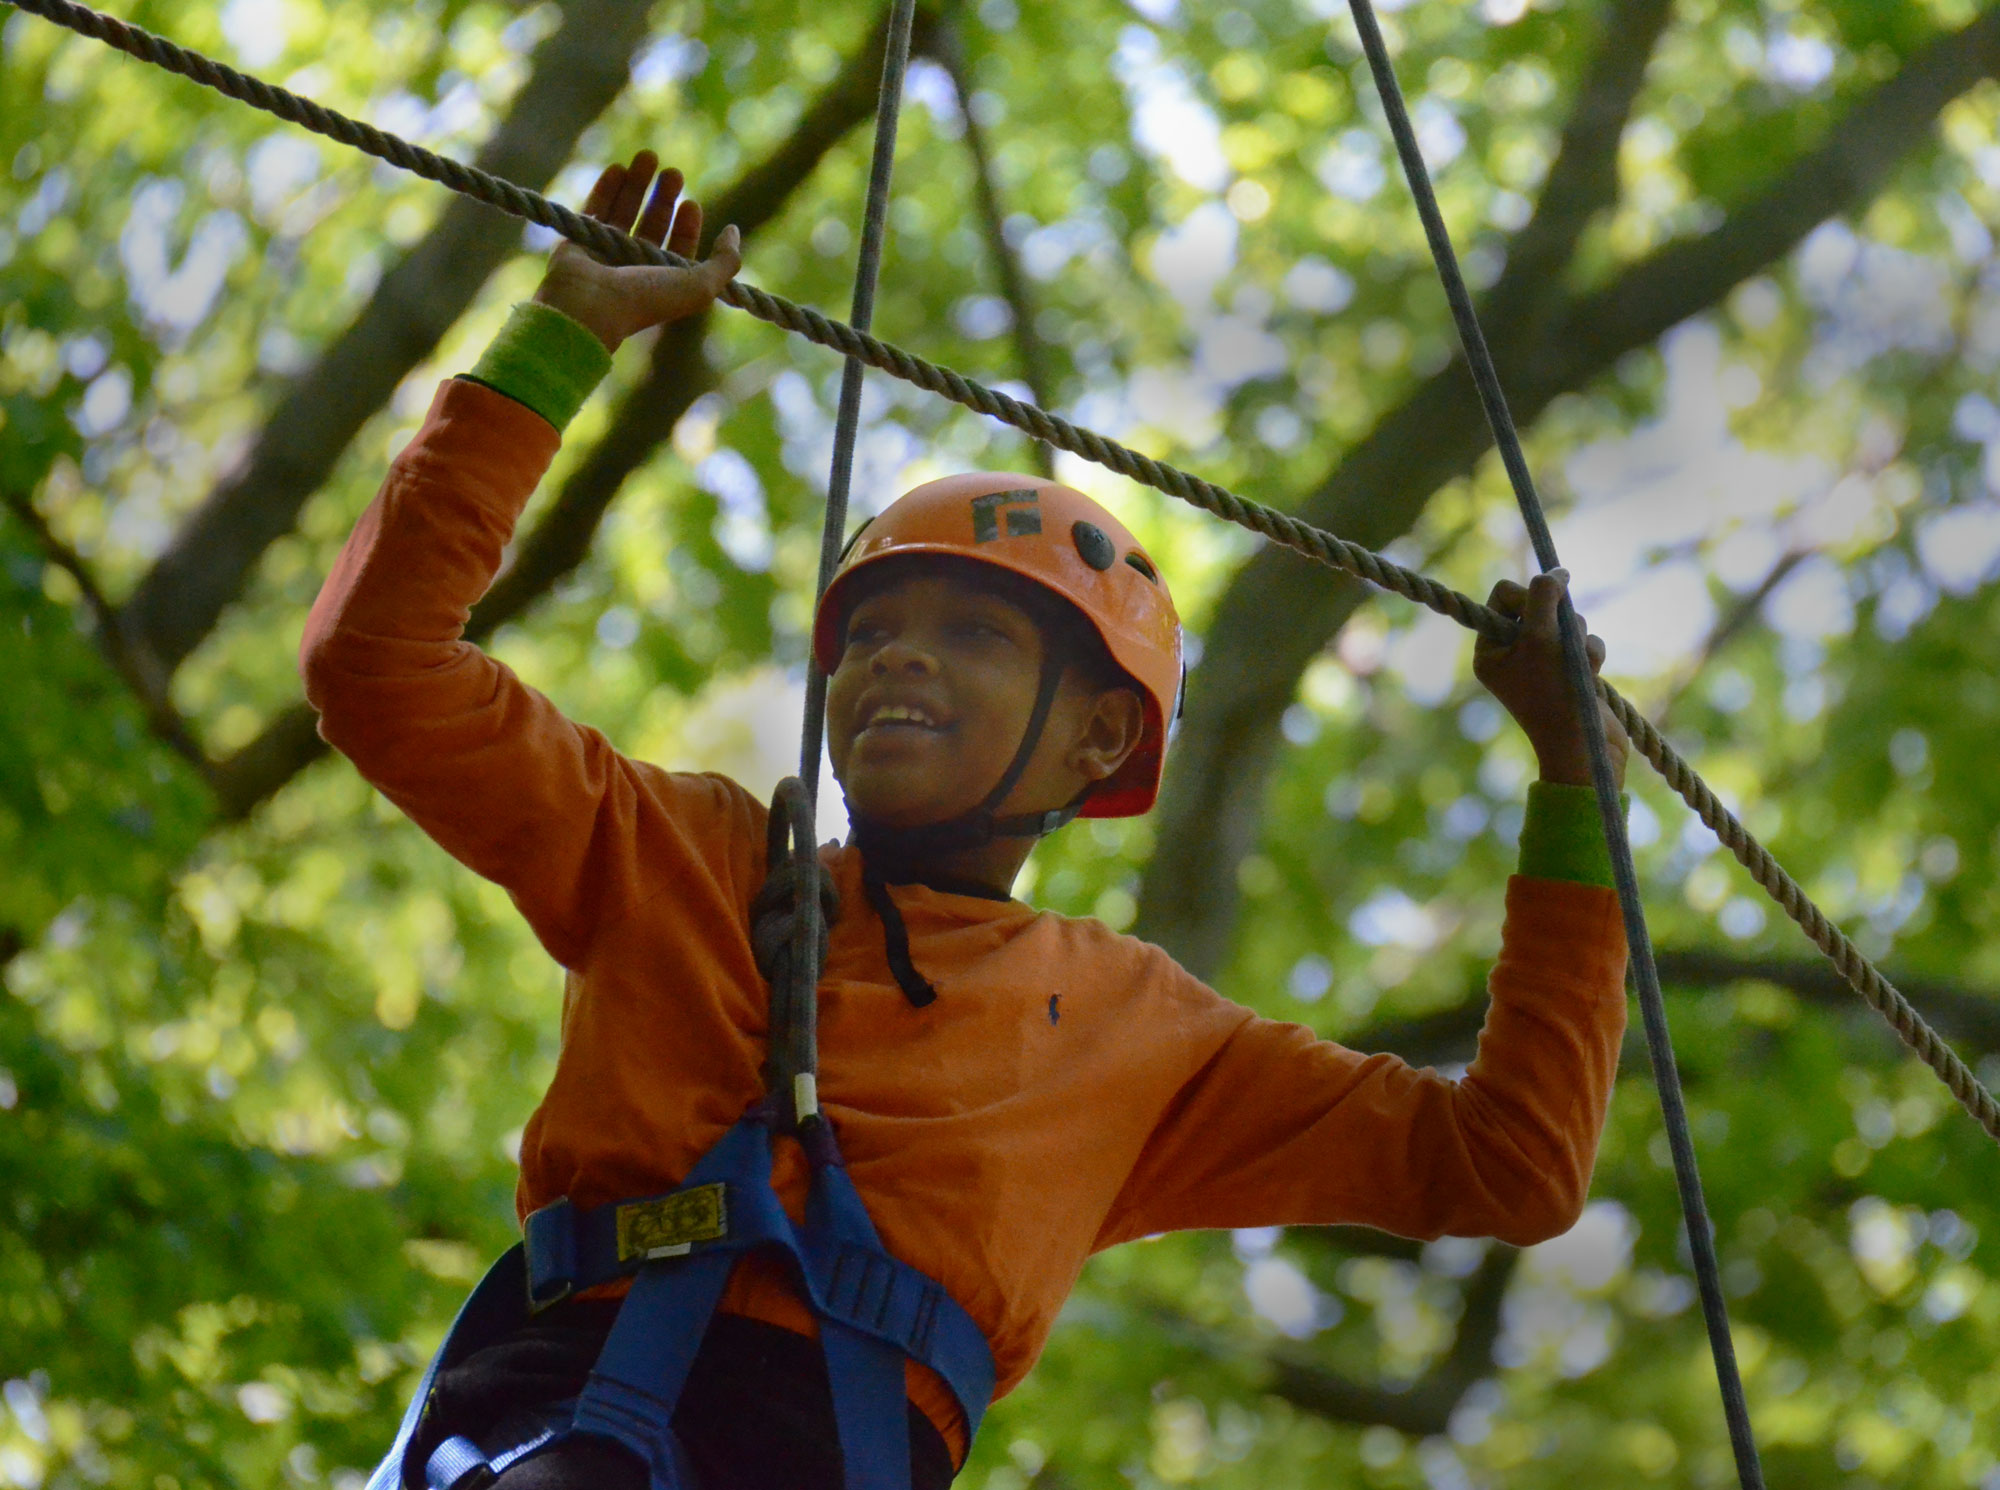 Caption: A student at the Metropolitan Expeditionary Learning School in New York conquers a high ropes course., Credit: Stephen Smith